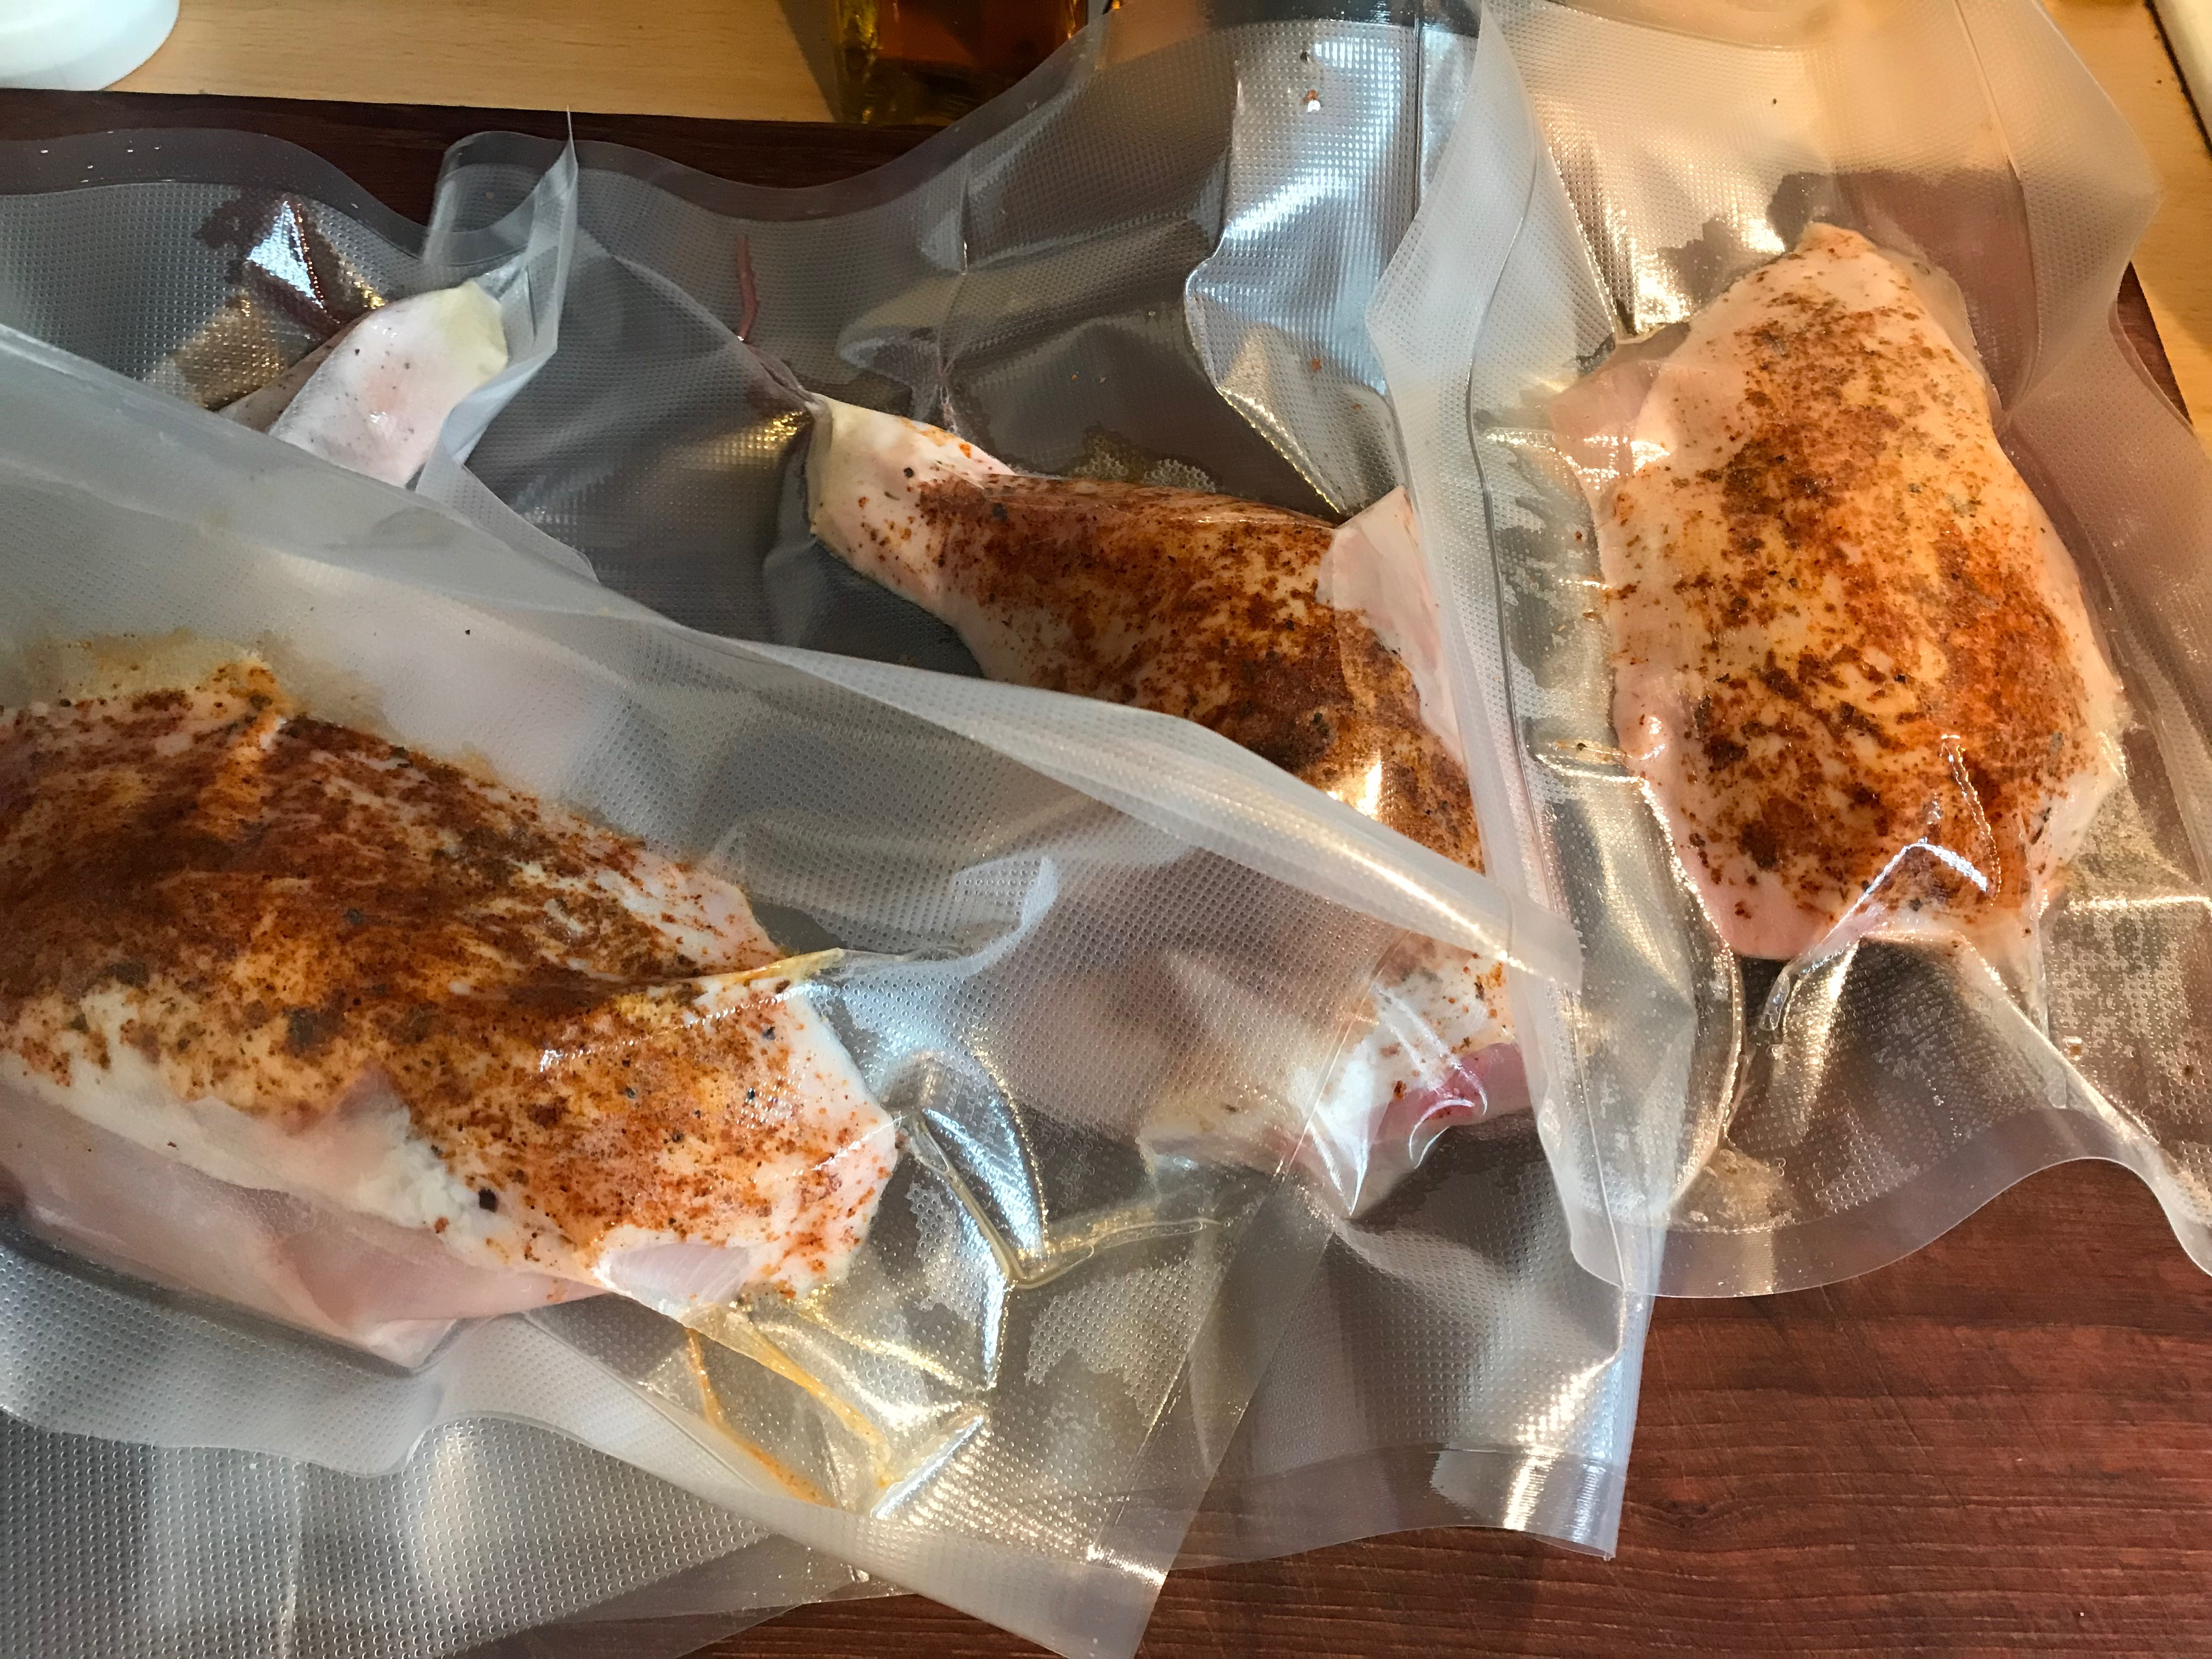 Sous vide vacuum packed chicken pieces